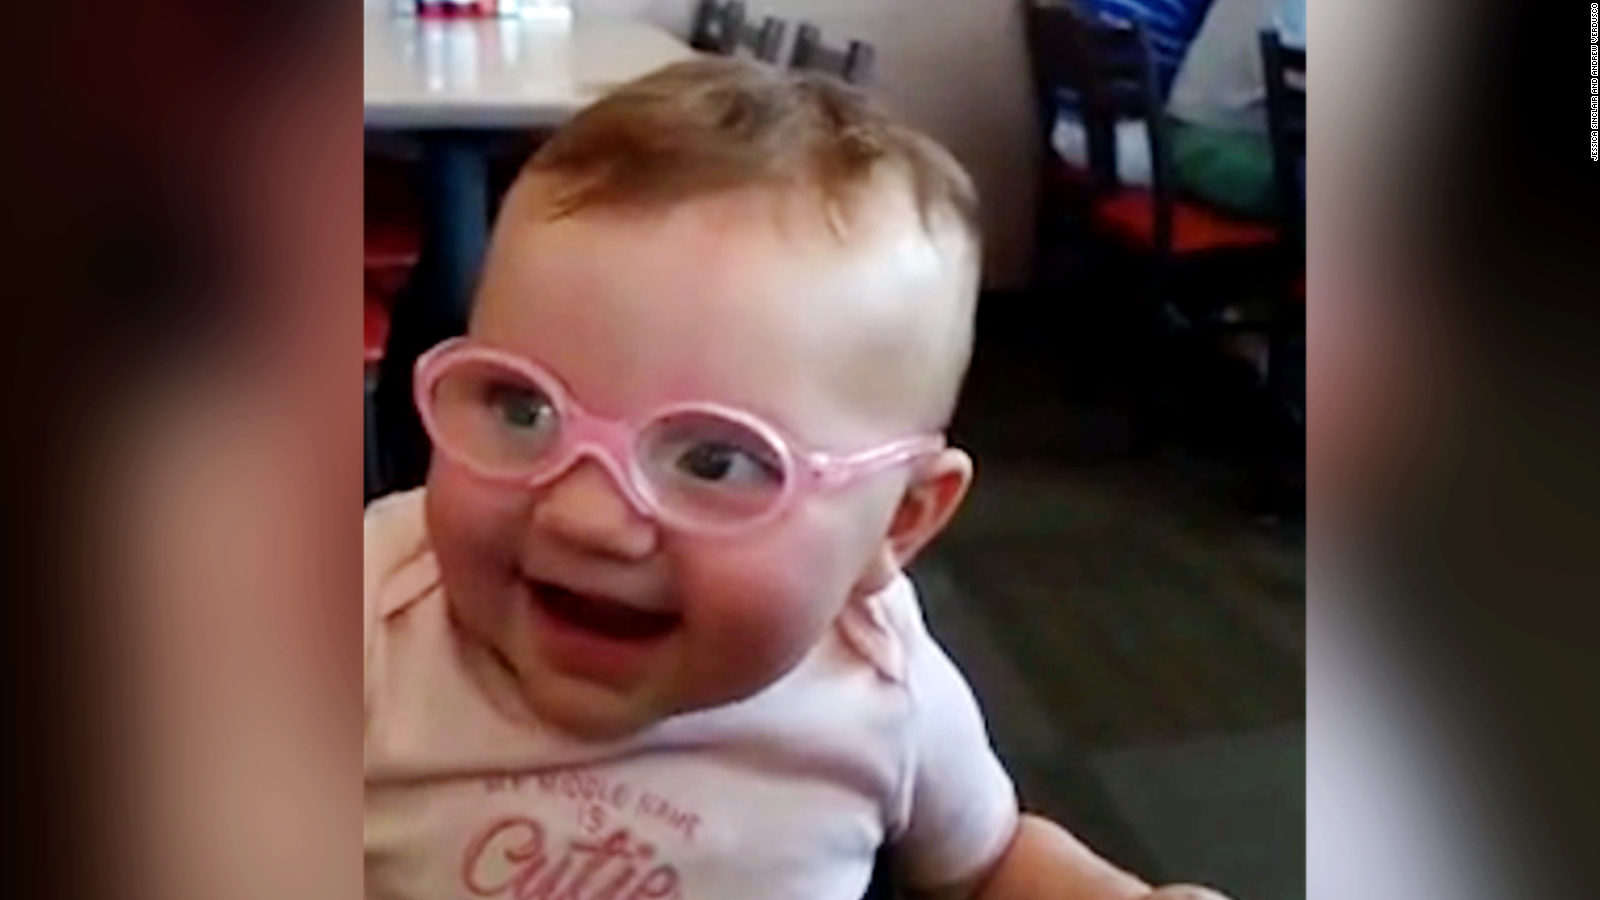 Babys Adorable Reaction To Glasses CNN Video - Little girls reaction to seeing her parents clearly for the first time is adorable